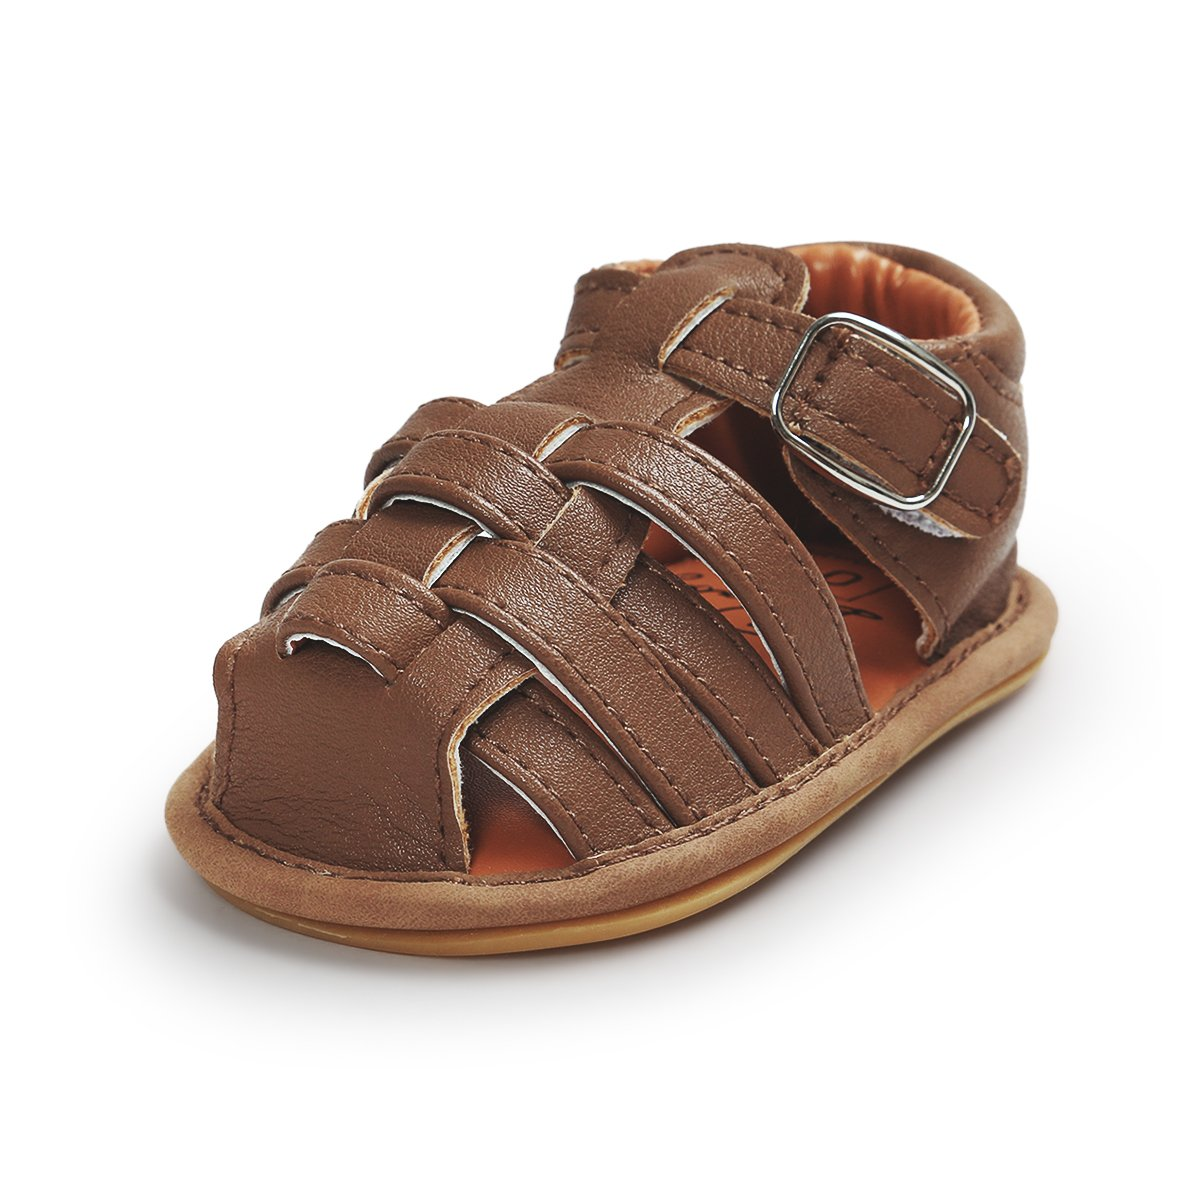 Kuner Infant Baby Boys Girls Pu Leather Rubber Sole Anti-Slip Summer Sandals First Walkers Shoes KR-7169